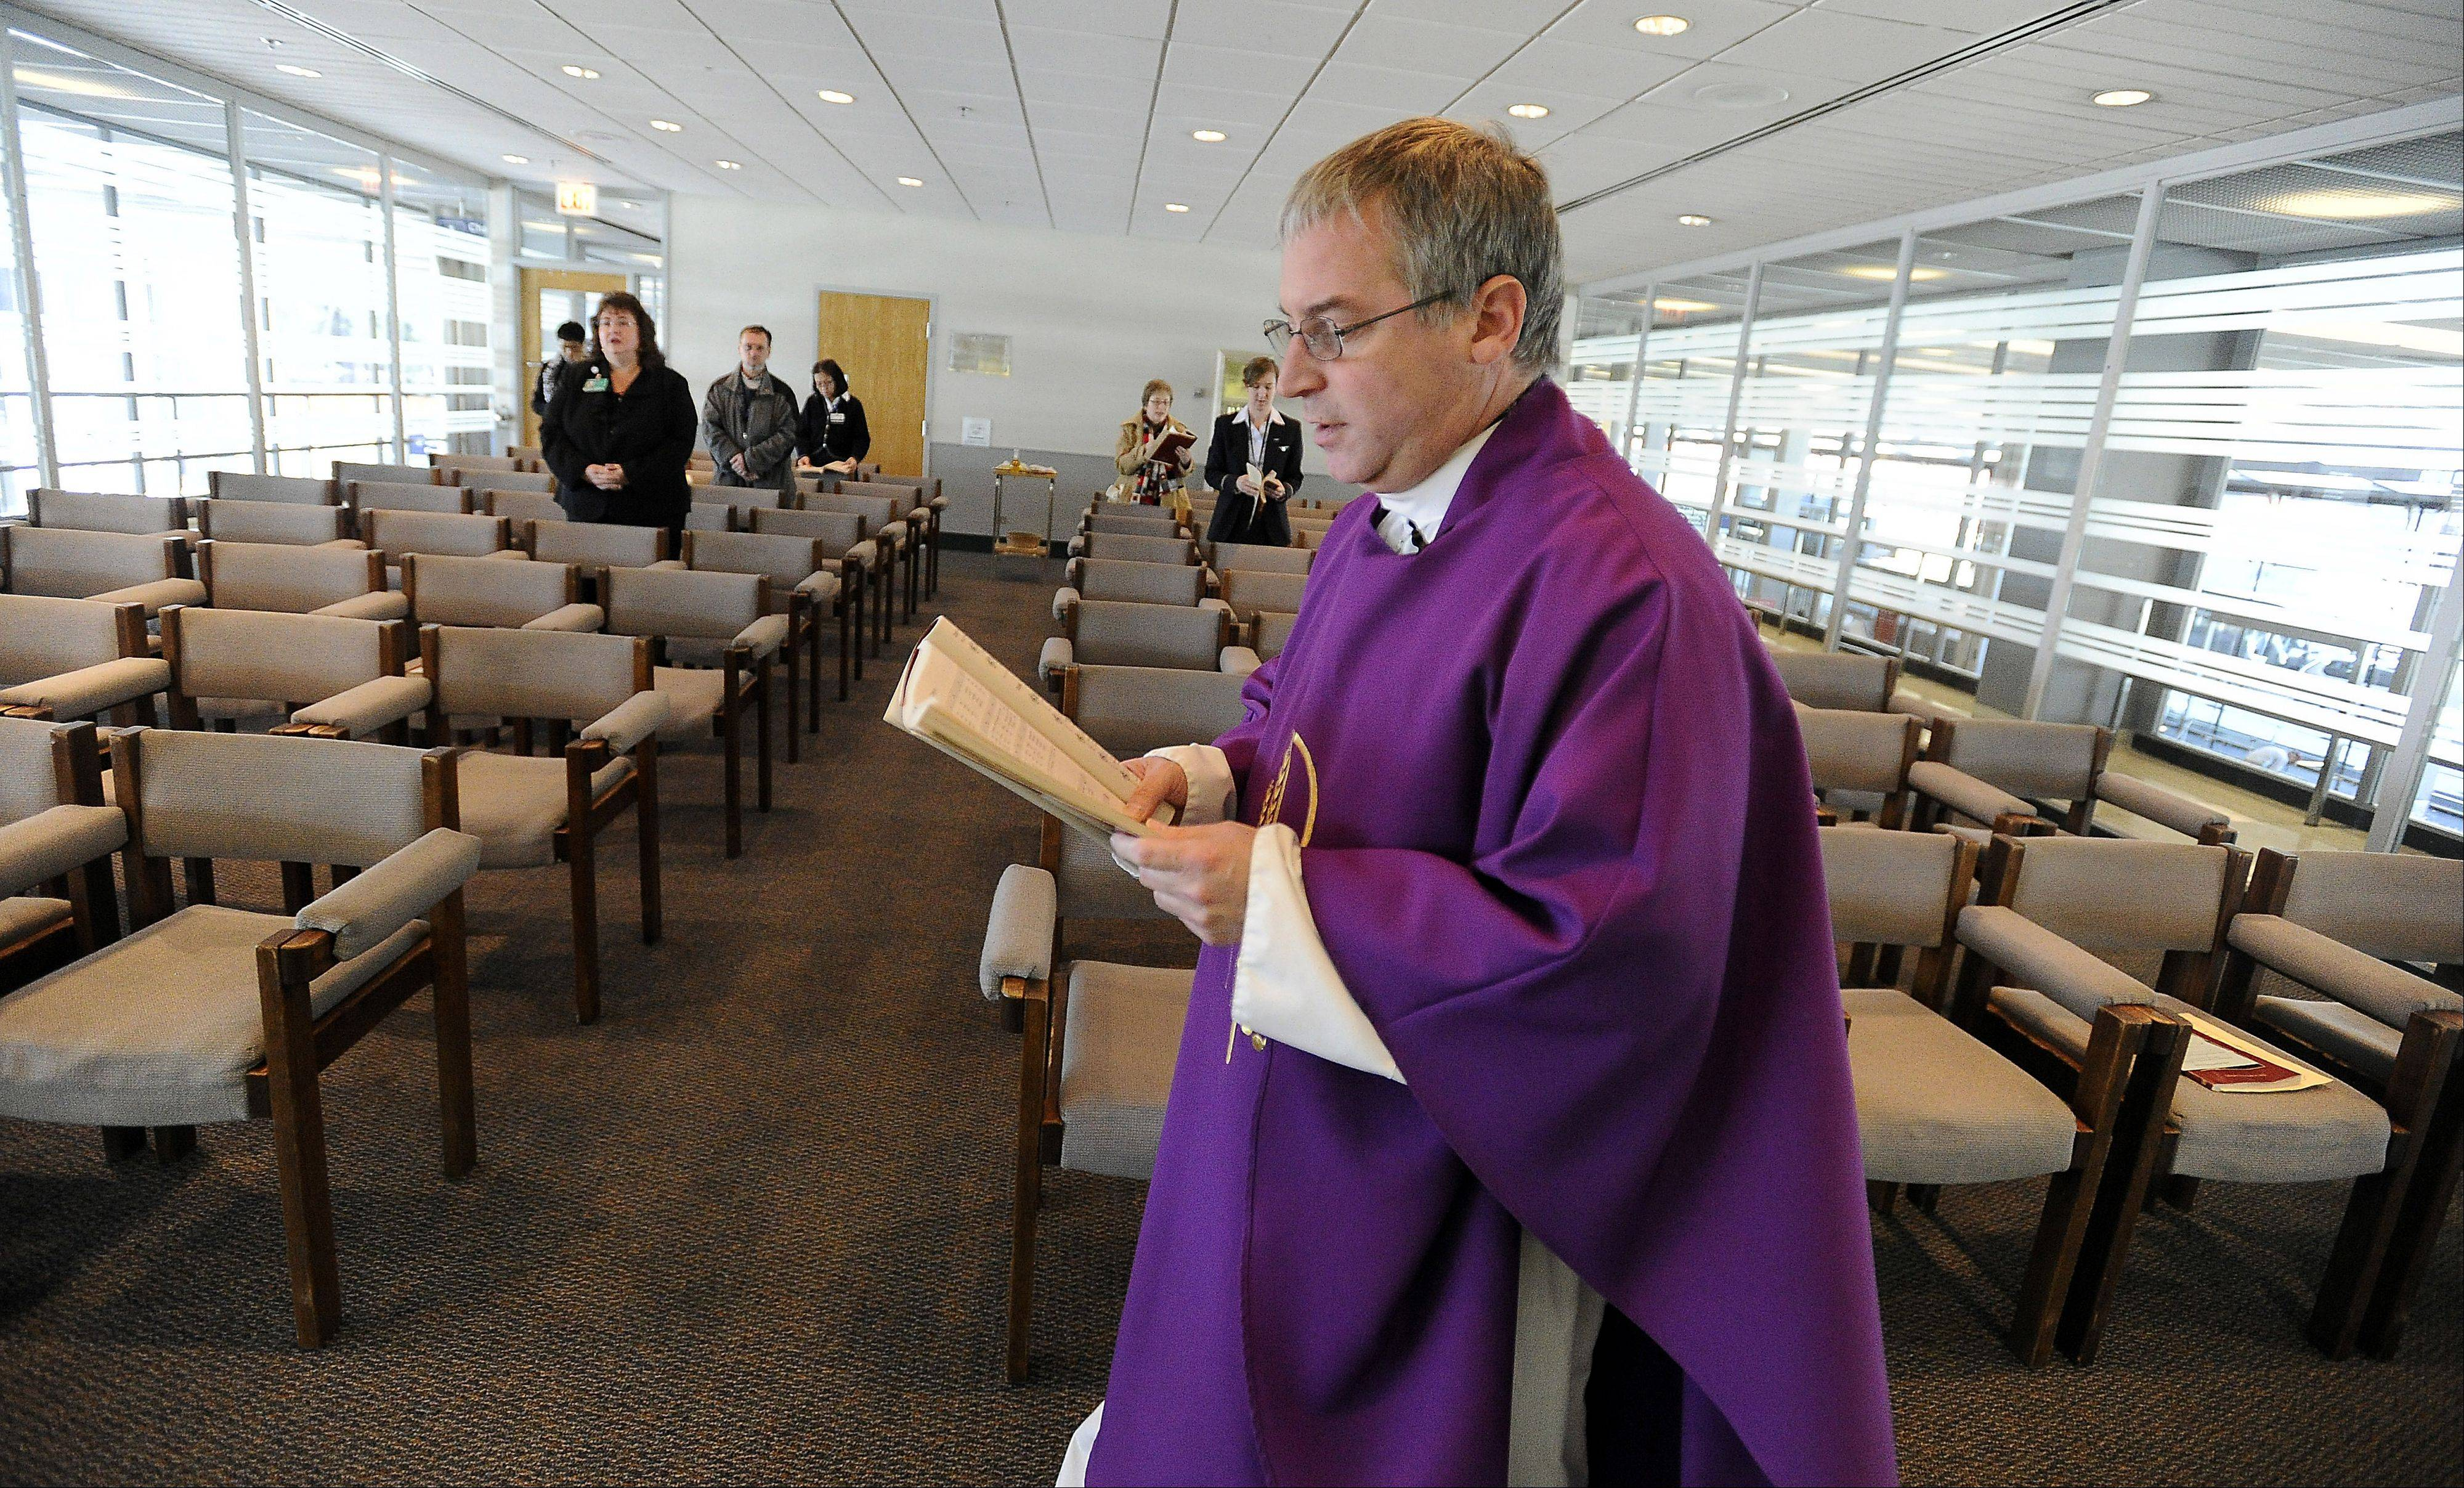 Father Mike says Mass in the Interfaith Chapel for travelers and airport personnel on a daily basis.